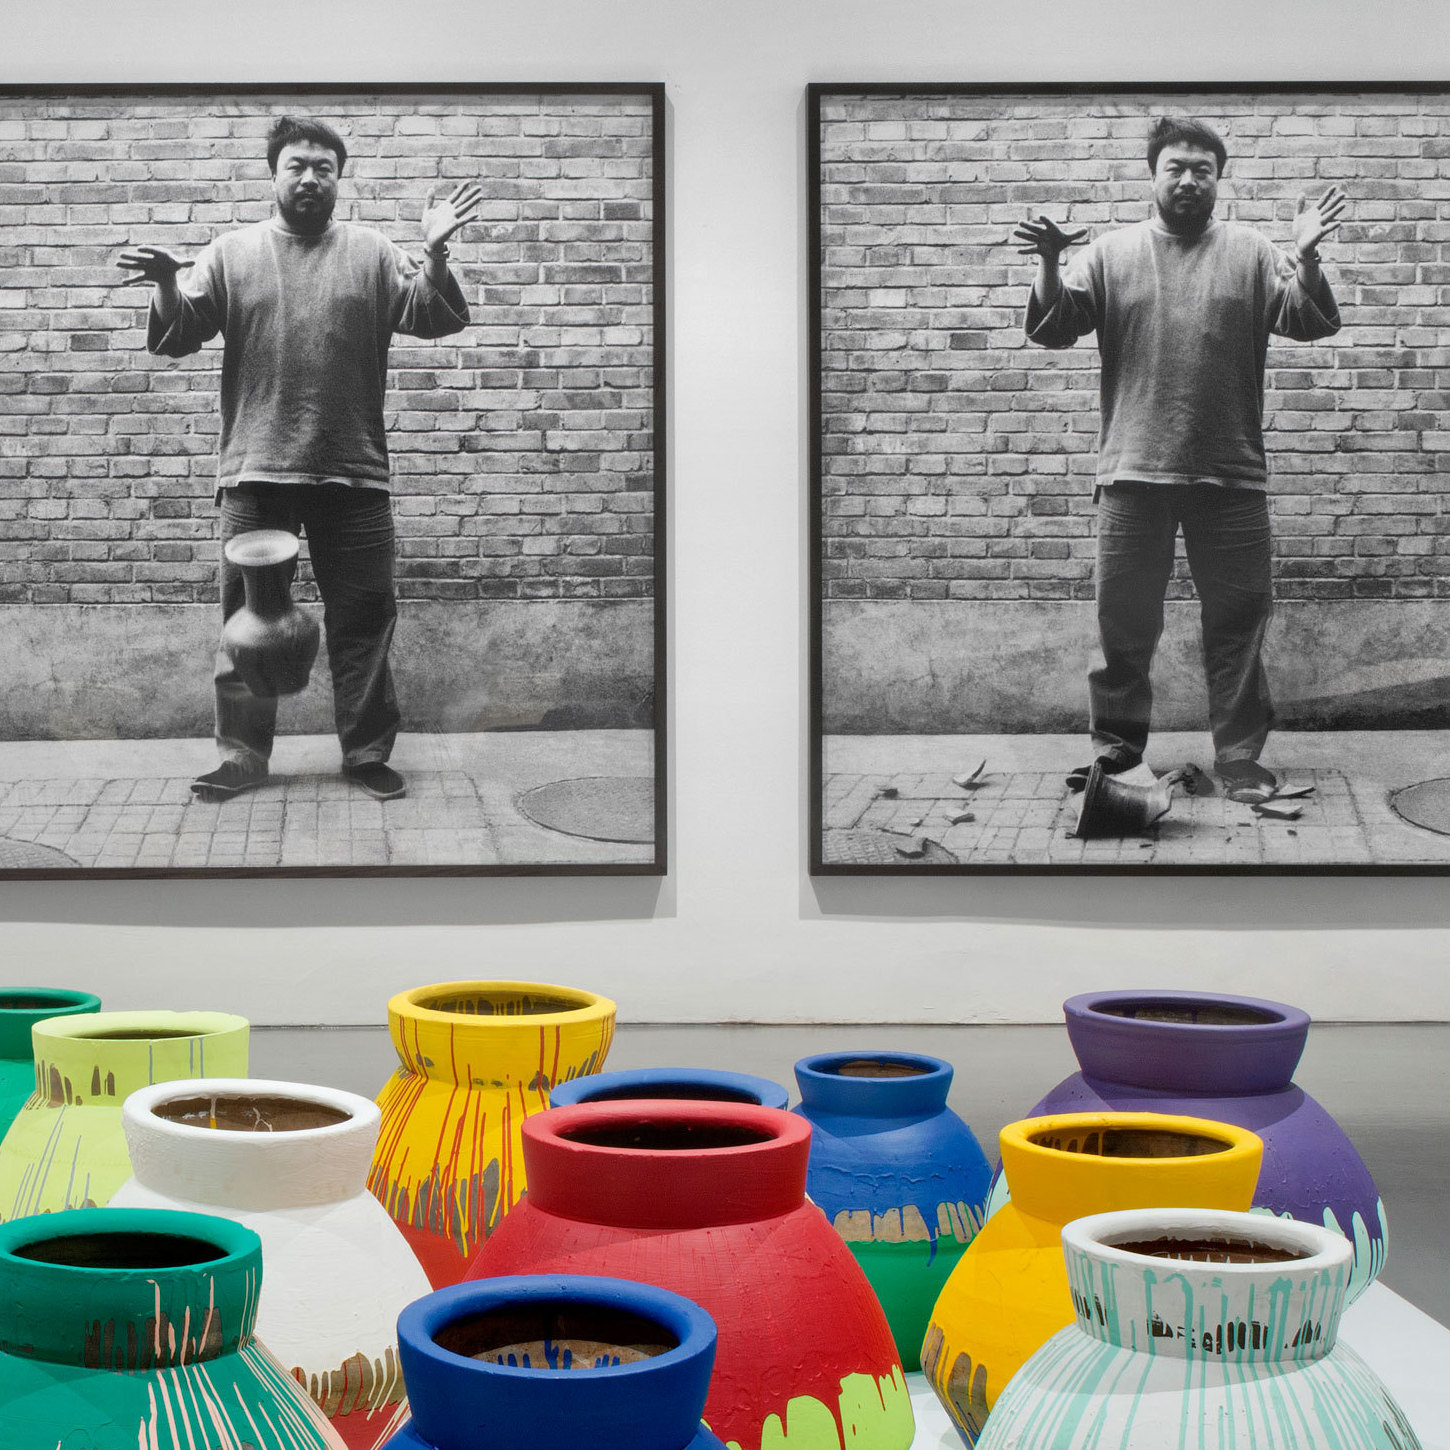 Ai's most controversial work involves altering revered objects, like these paint-covered ancient Chinese vases, or destroying them altogether, as shown in the photographic triptych, Dropping a Han Dynasty Urn.